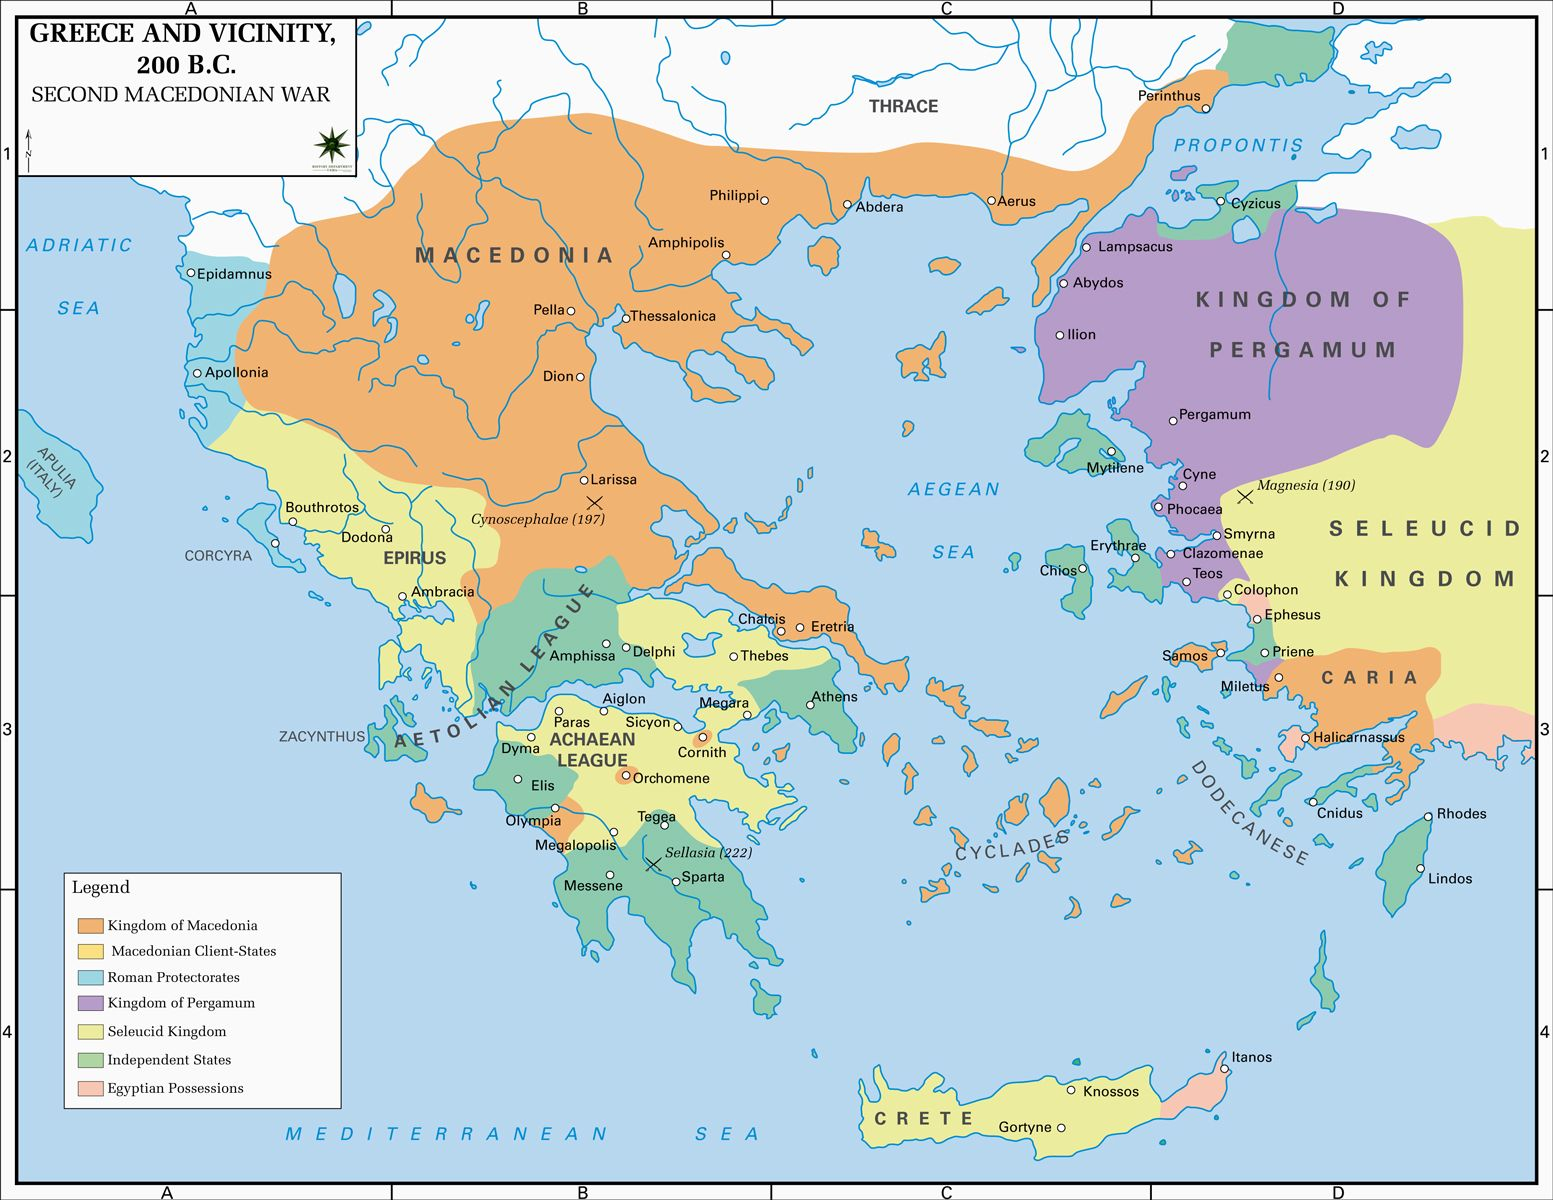 Map Of Greece And Vicinity 200 Bc